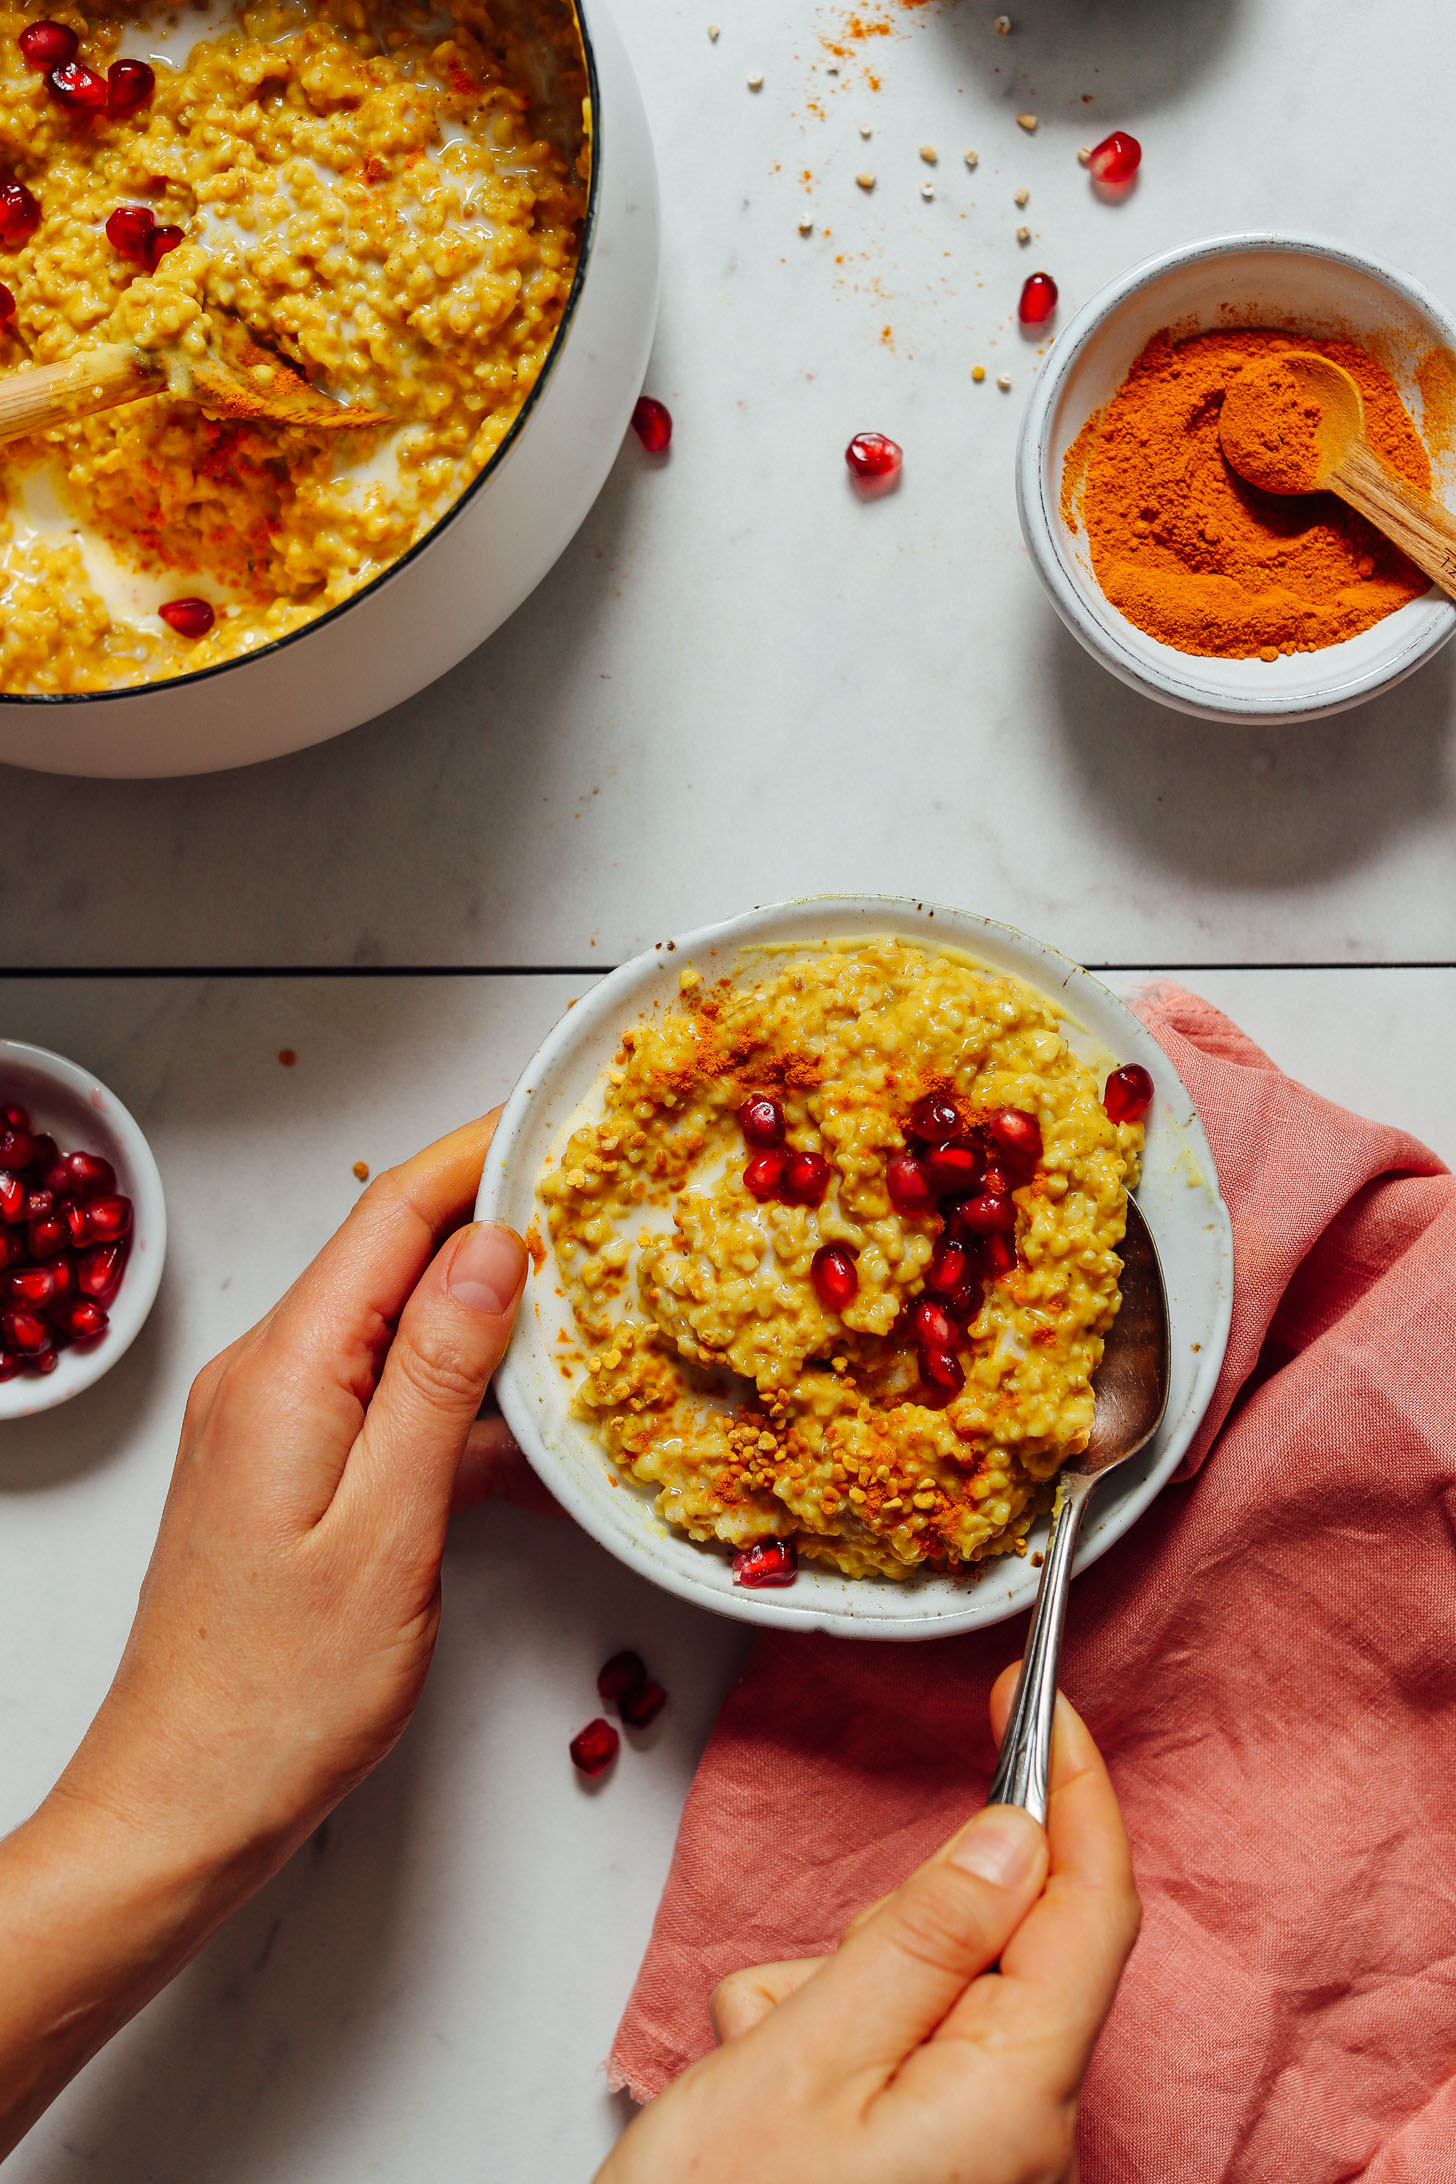 Holding a bowl of Cozy Turmeric Porridge topped with bee pollen and pomegranate seeds